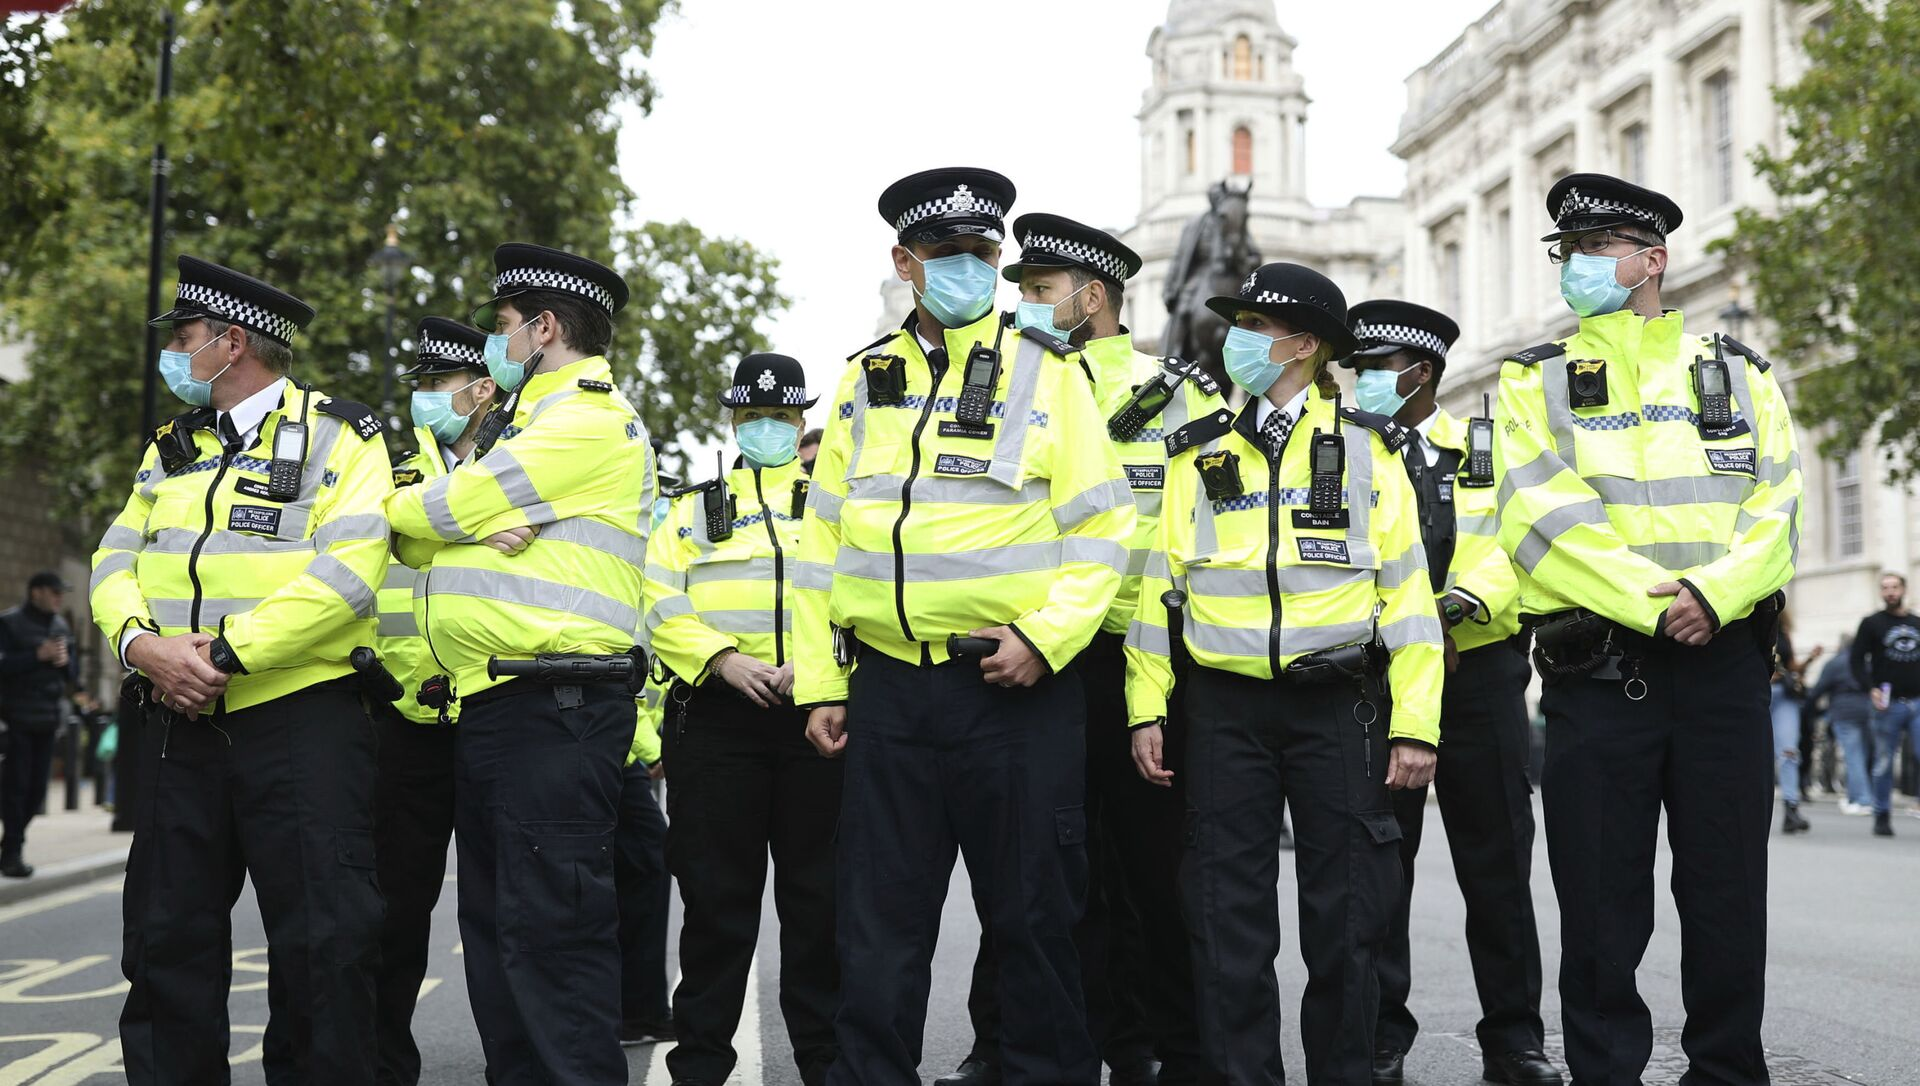 Police officers wearing face masks stand guard during a protest opposed to COVID-19 pandemic restrictions, in Trafalgar Square, London, 29 August, 2020 - Sputnik International, 1920, 27.07.2021